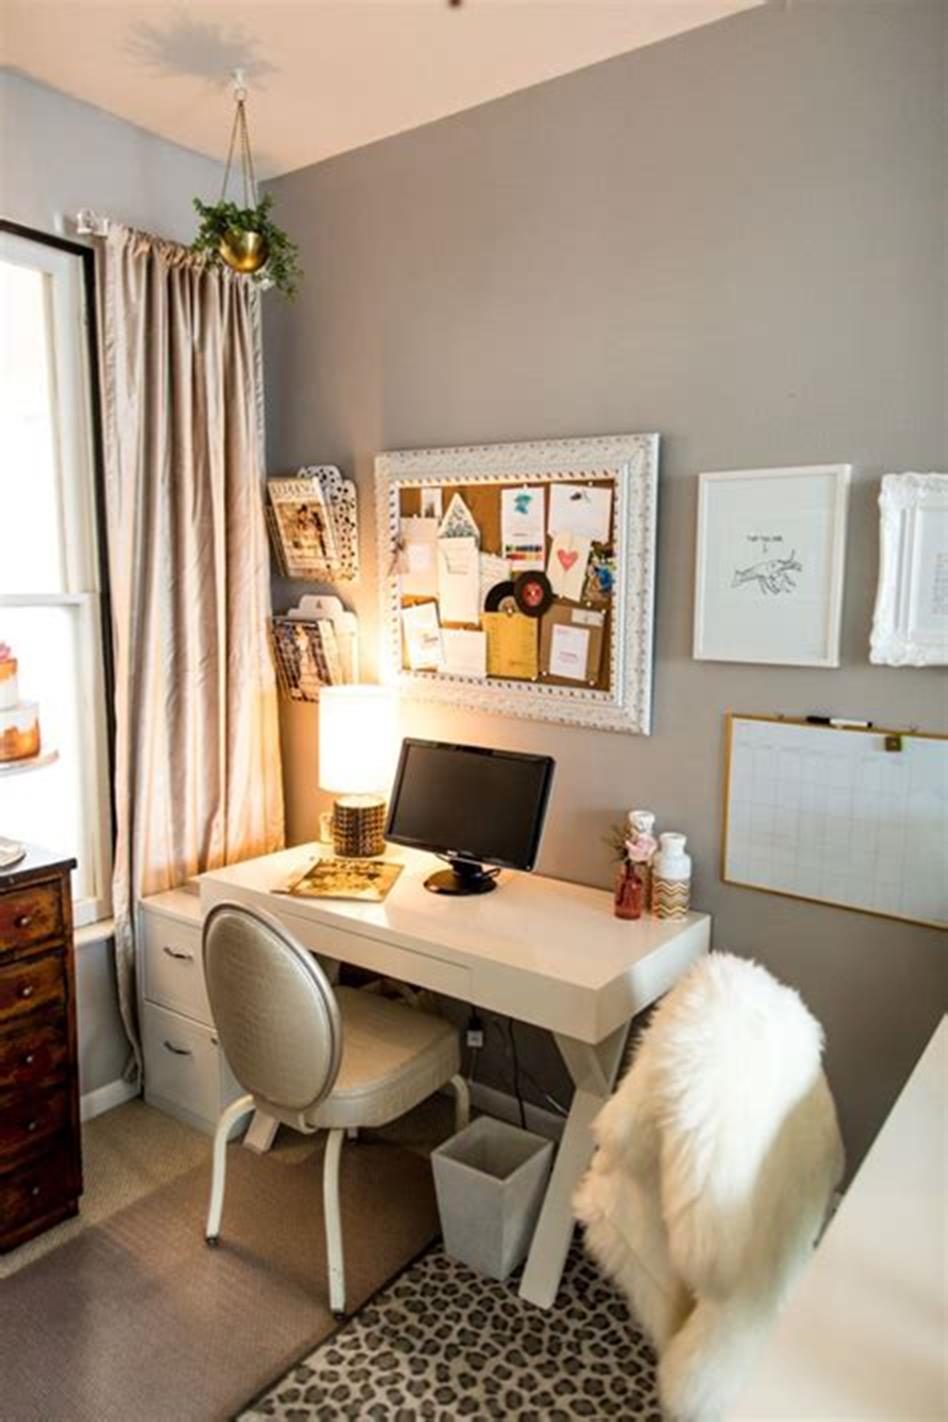 50 Best Small Space Office Decorating Ideas On a Budget 2019 24